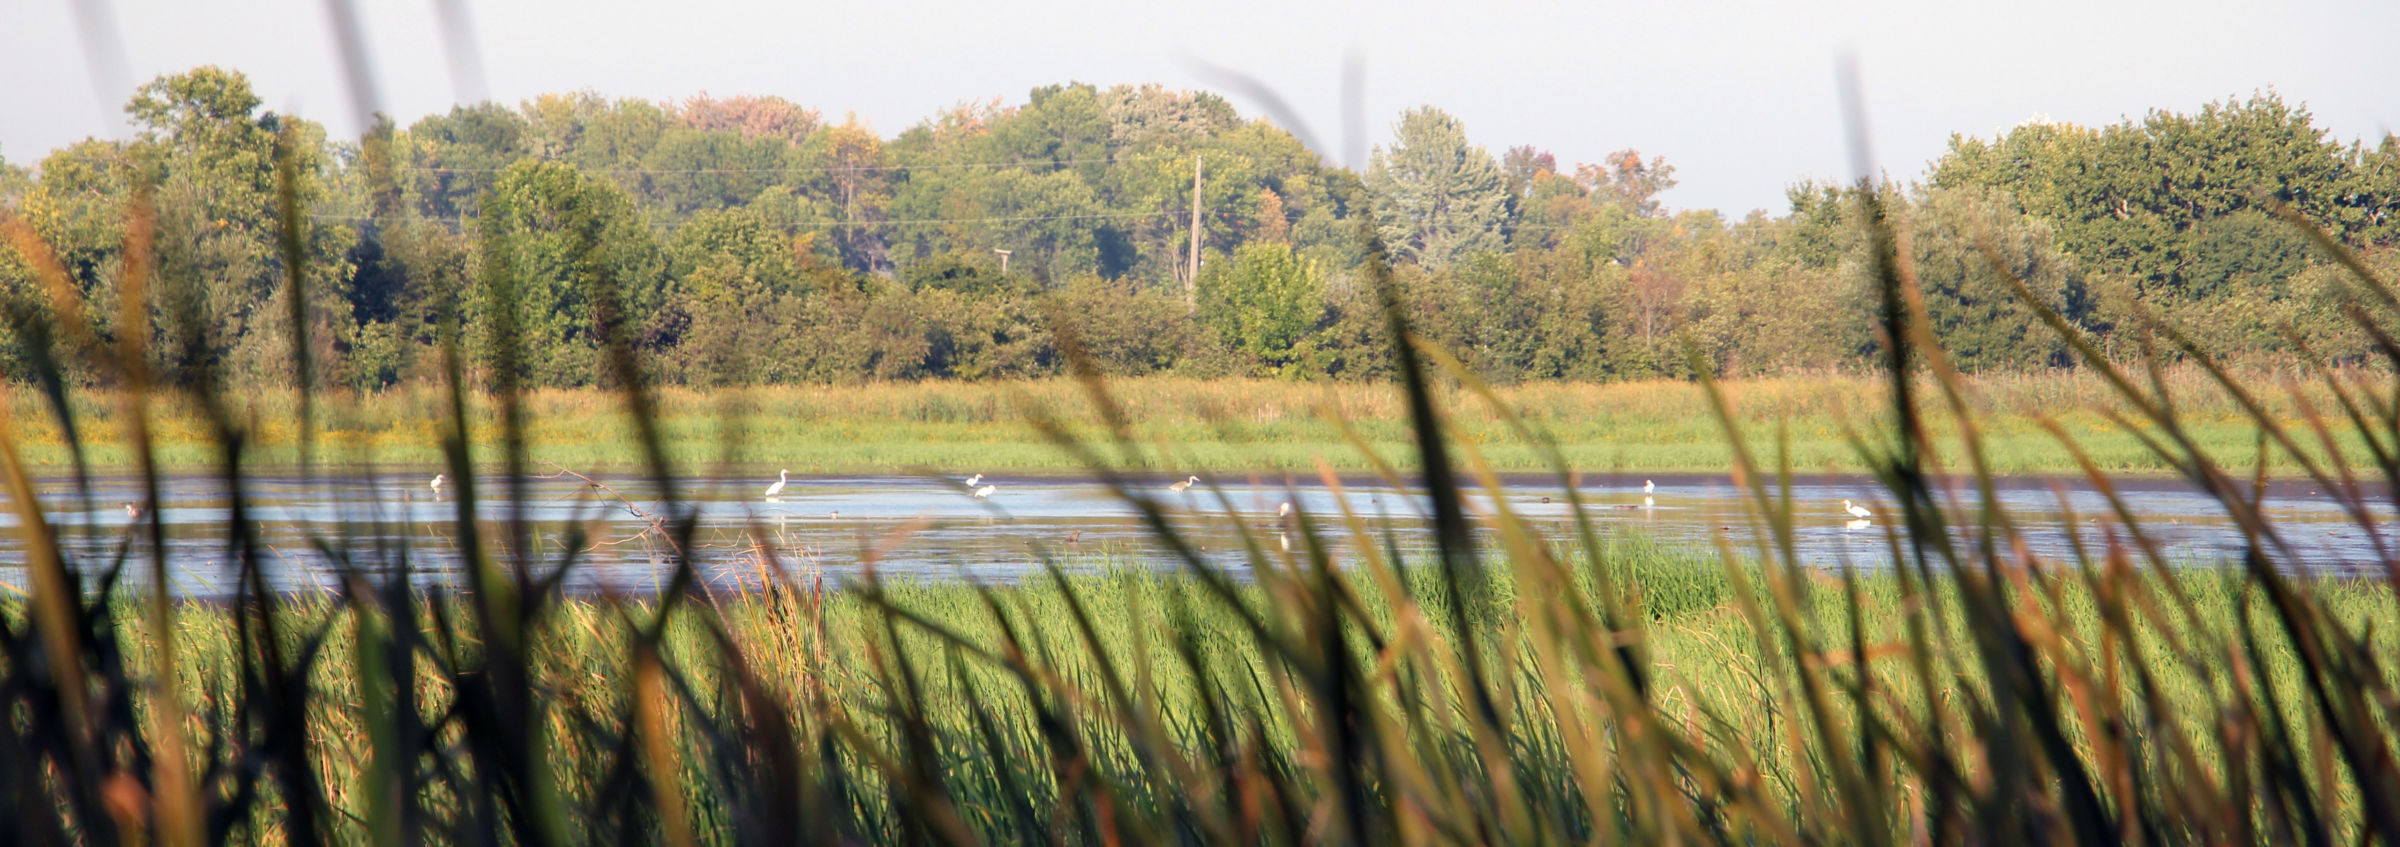 Lynde Shores Conservation Area, coastal wetlands, great blue herons, great egrets, cattails nearby urban area